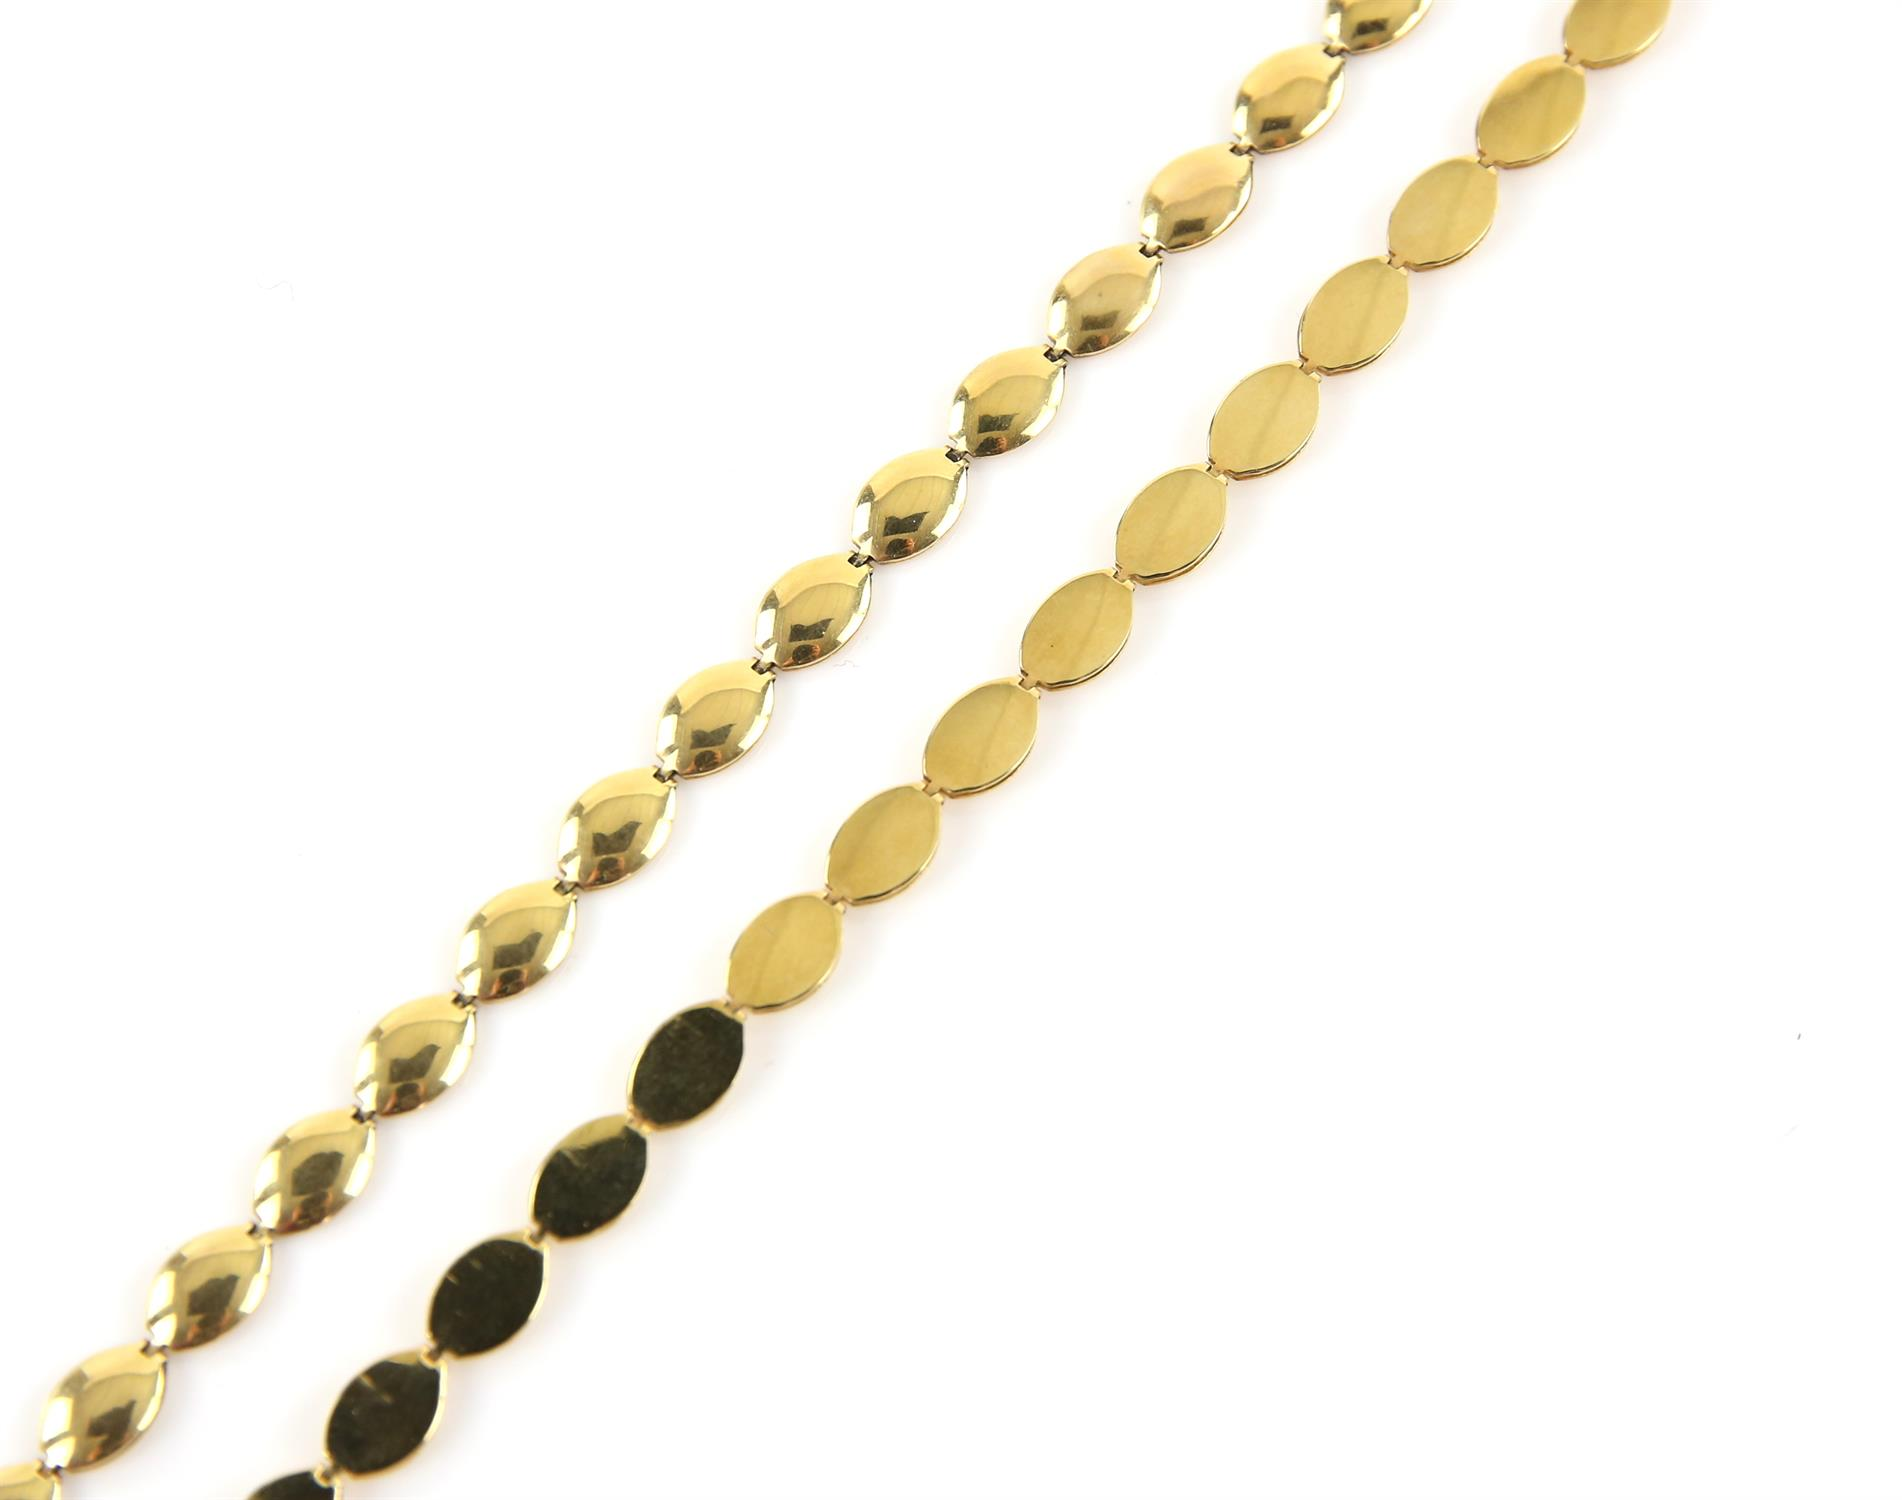 Necklace and bracelet set, designed as oval gold articulated links, on a lobster clasp, - Image 2 of 2